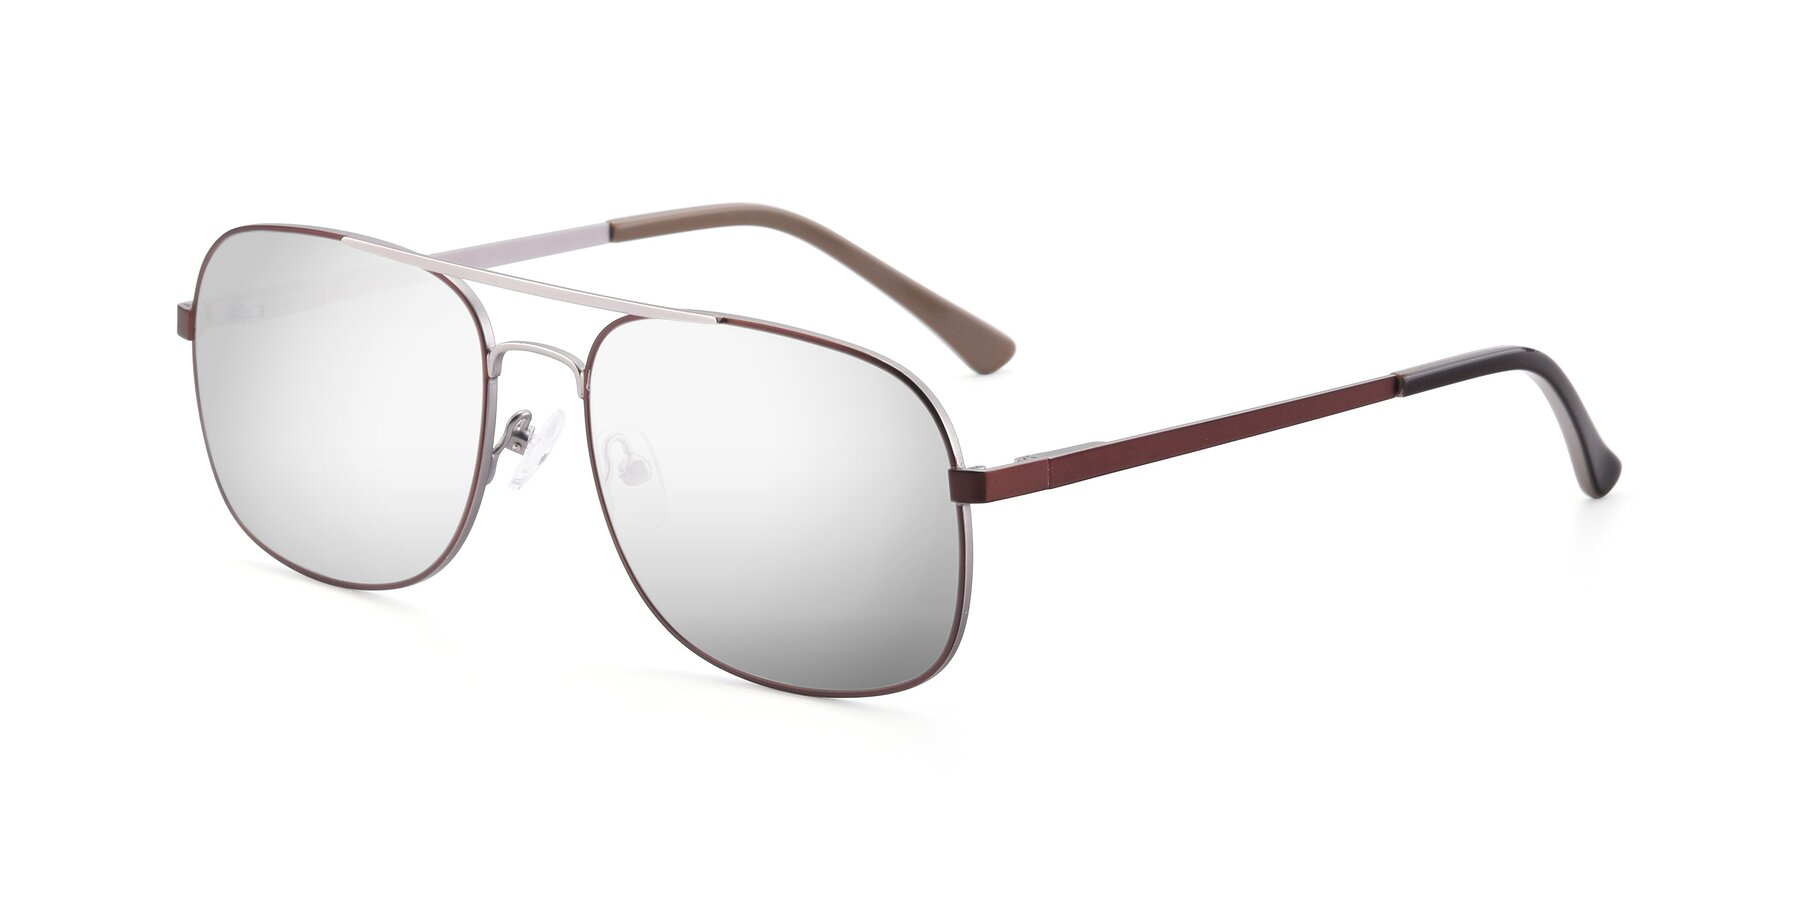 Angle of 9487 in Brown-Silver with Silver Mirrored Lenses